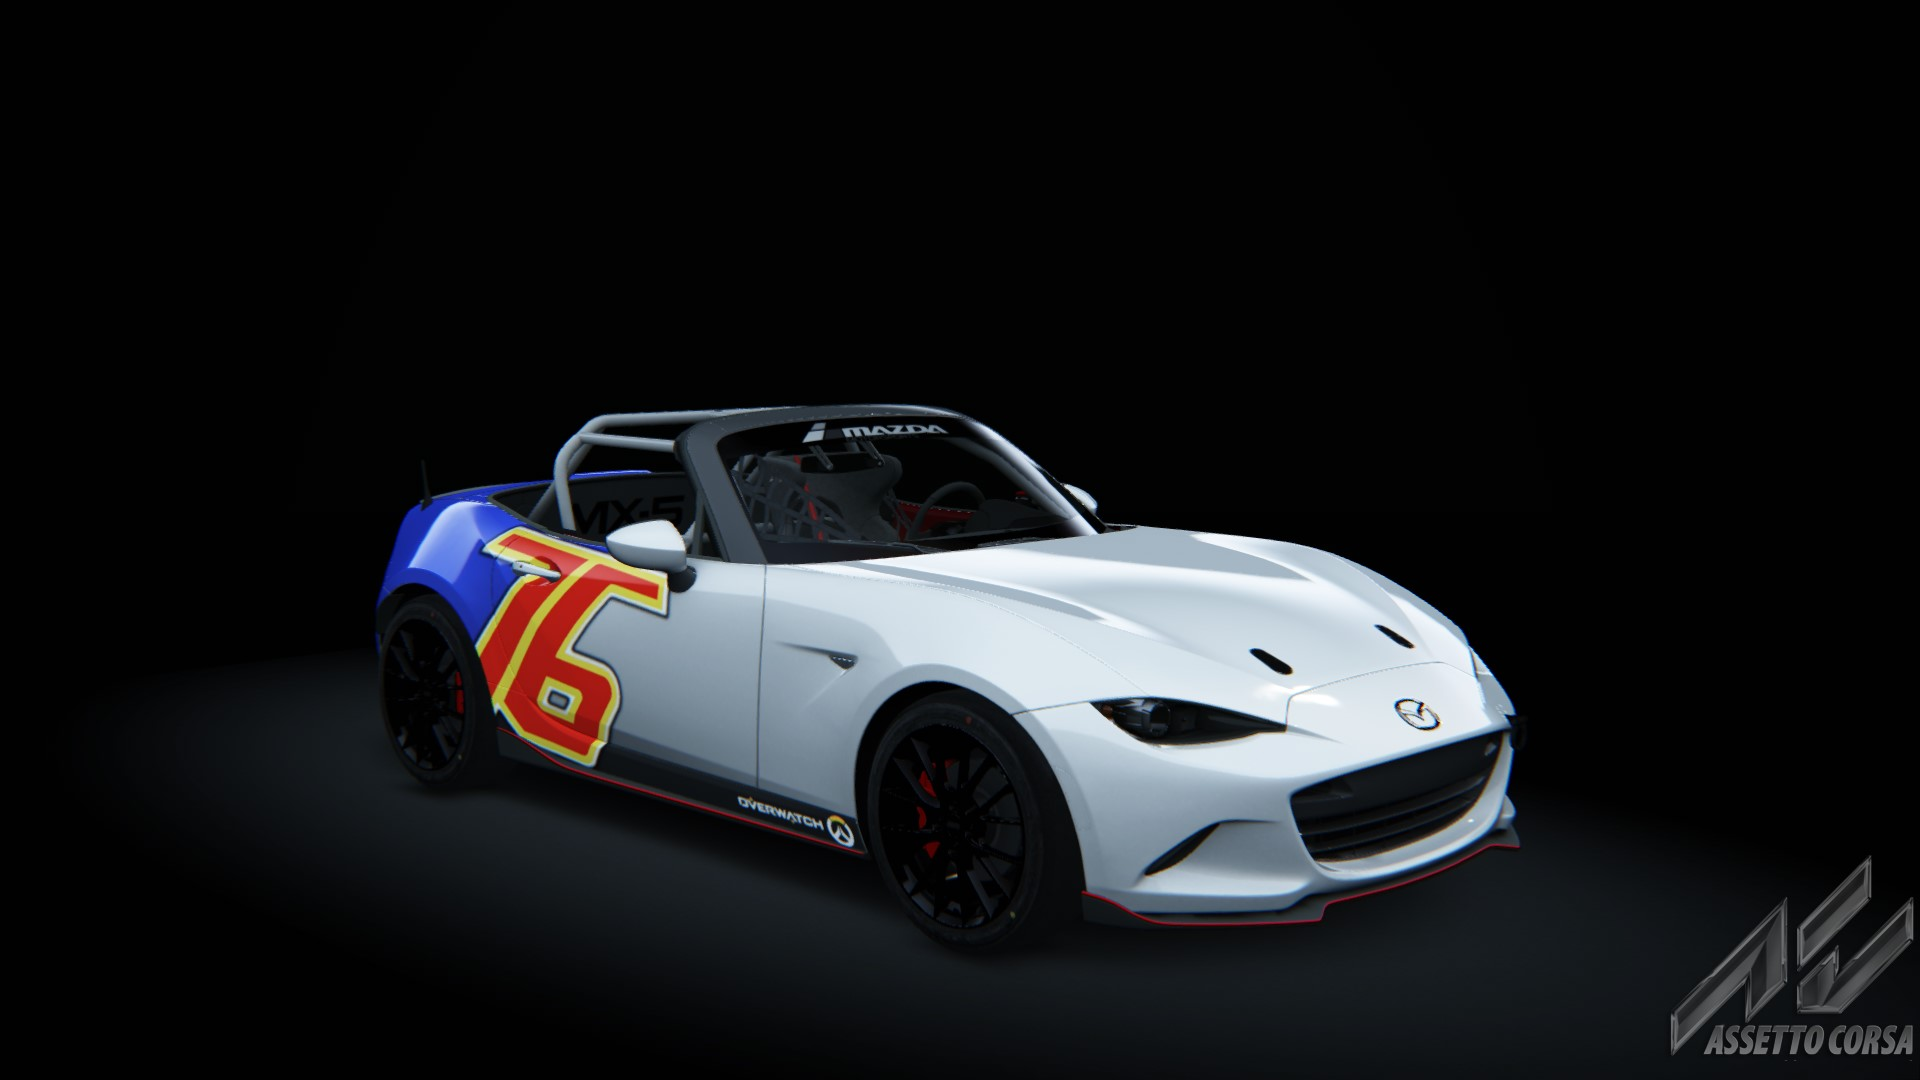 Showroom_ks_mazda_mx5_cup_28-4-2016-15-56-32.jpg